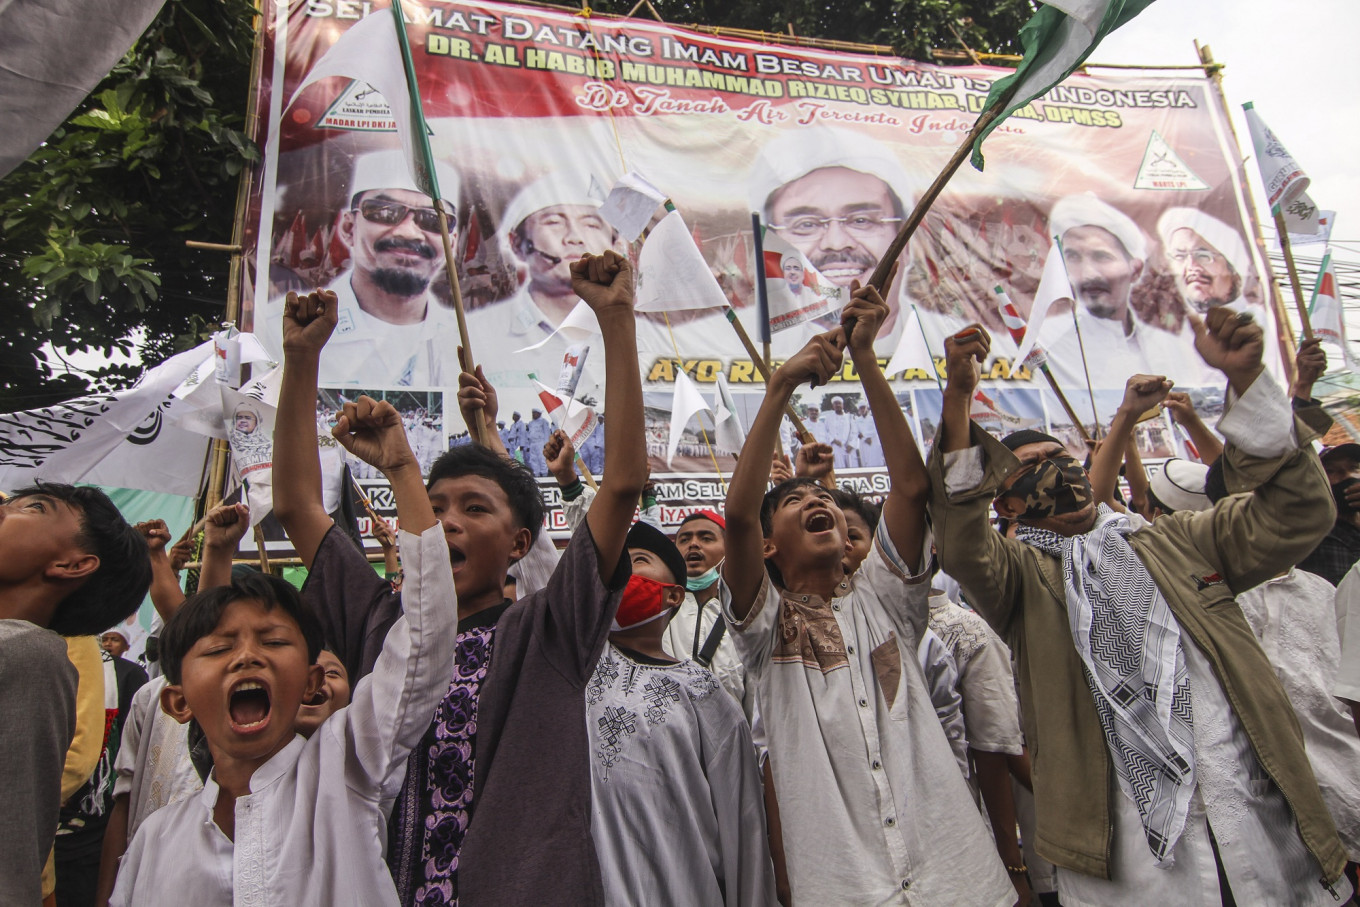 Jakarta military commander says he ordered removal of banners depicting Rizieq Shihab